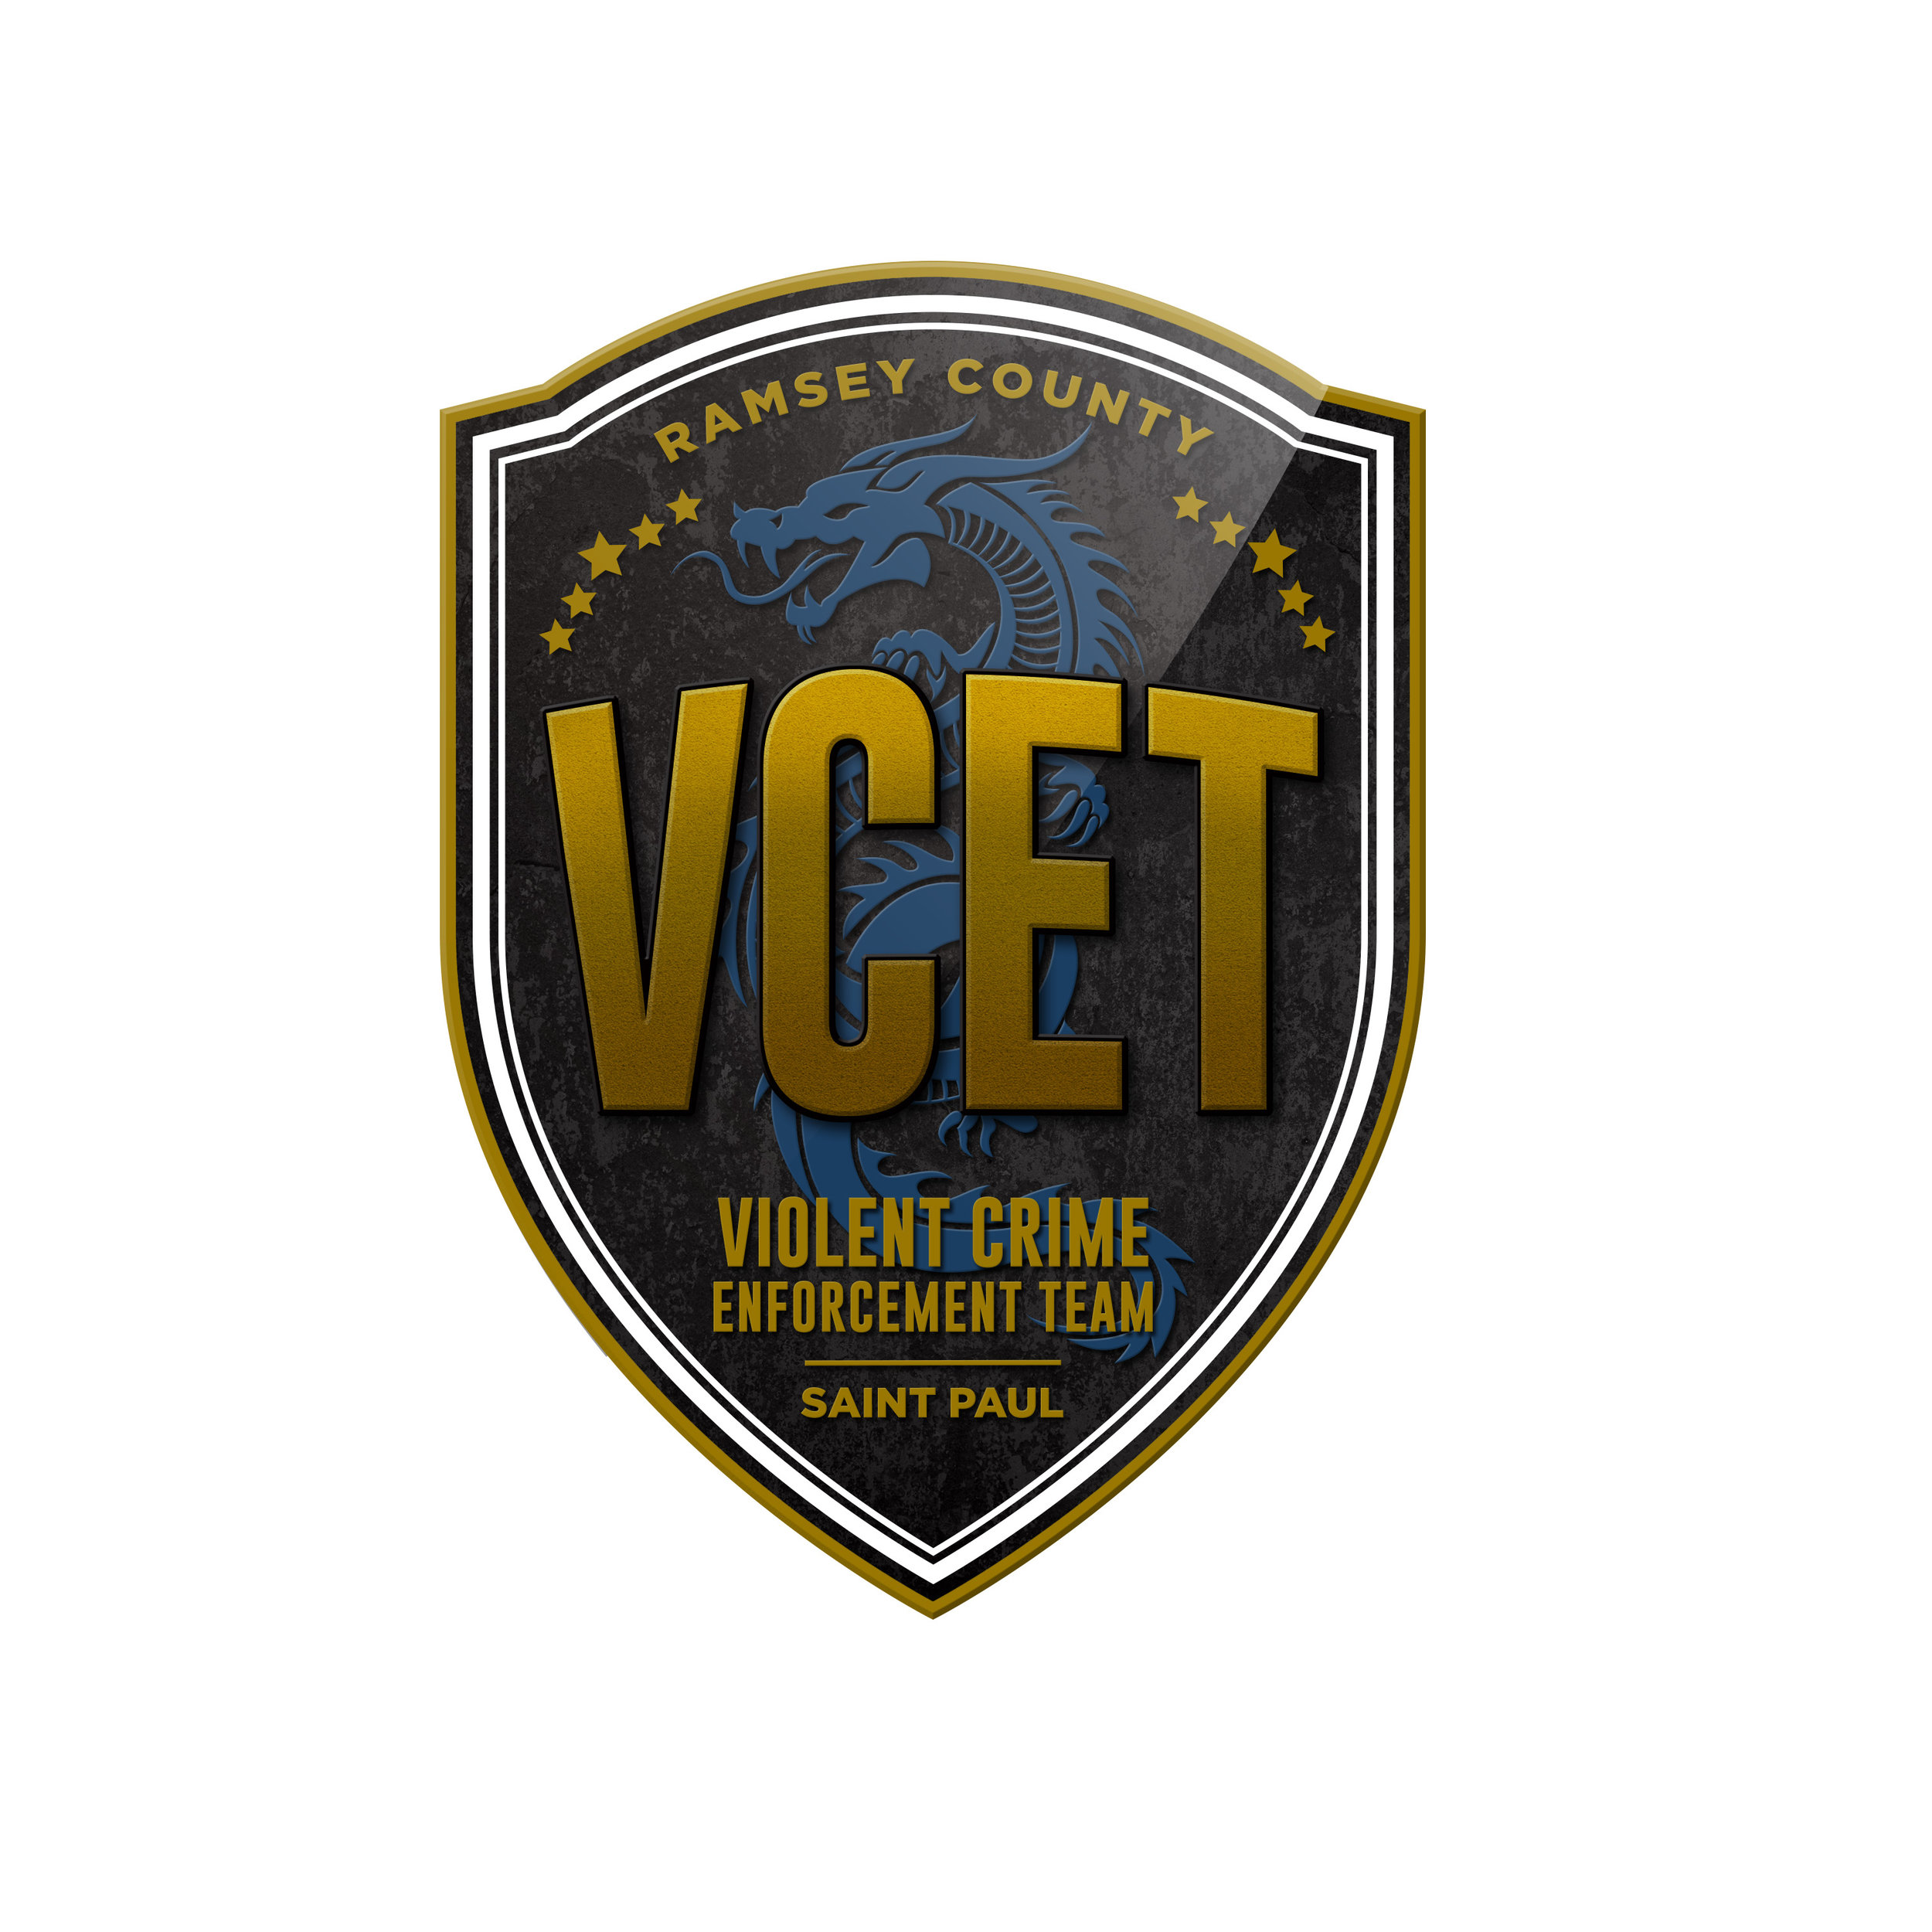 VCET logo design from Maverick Design - Violent Crime Enforcement Team